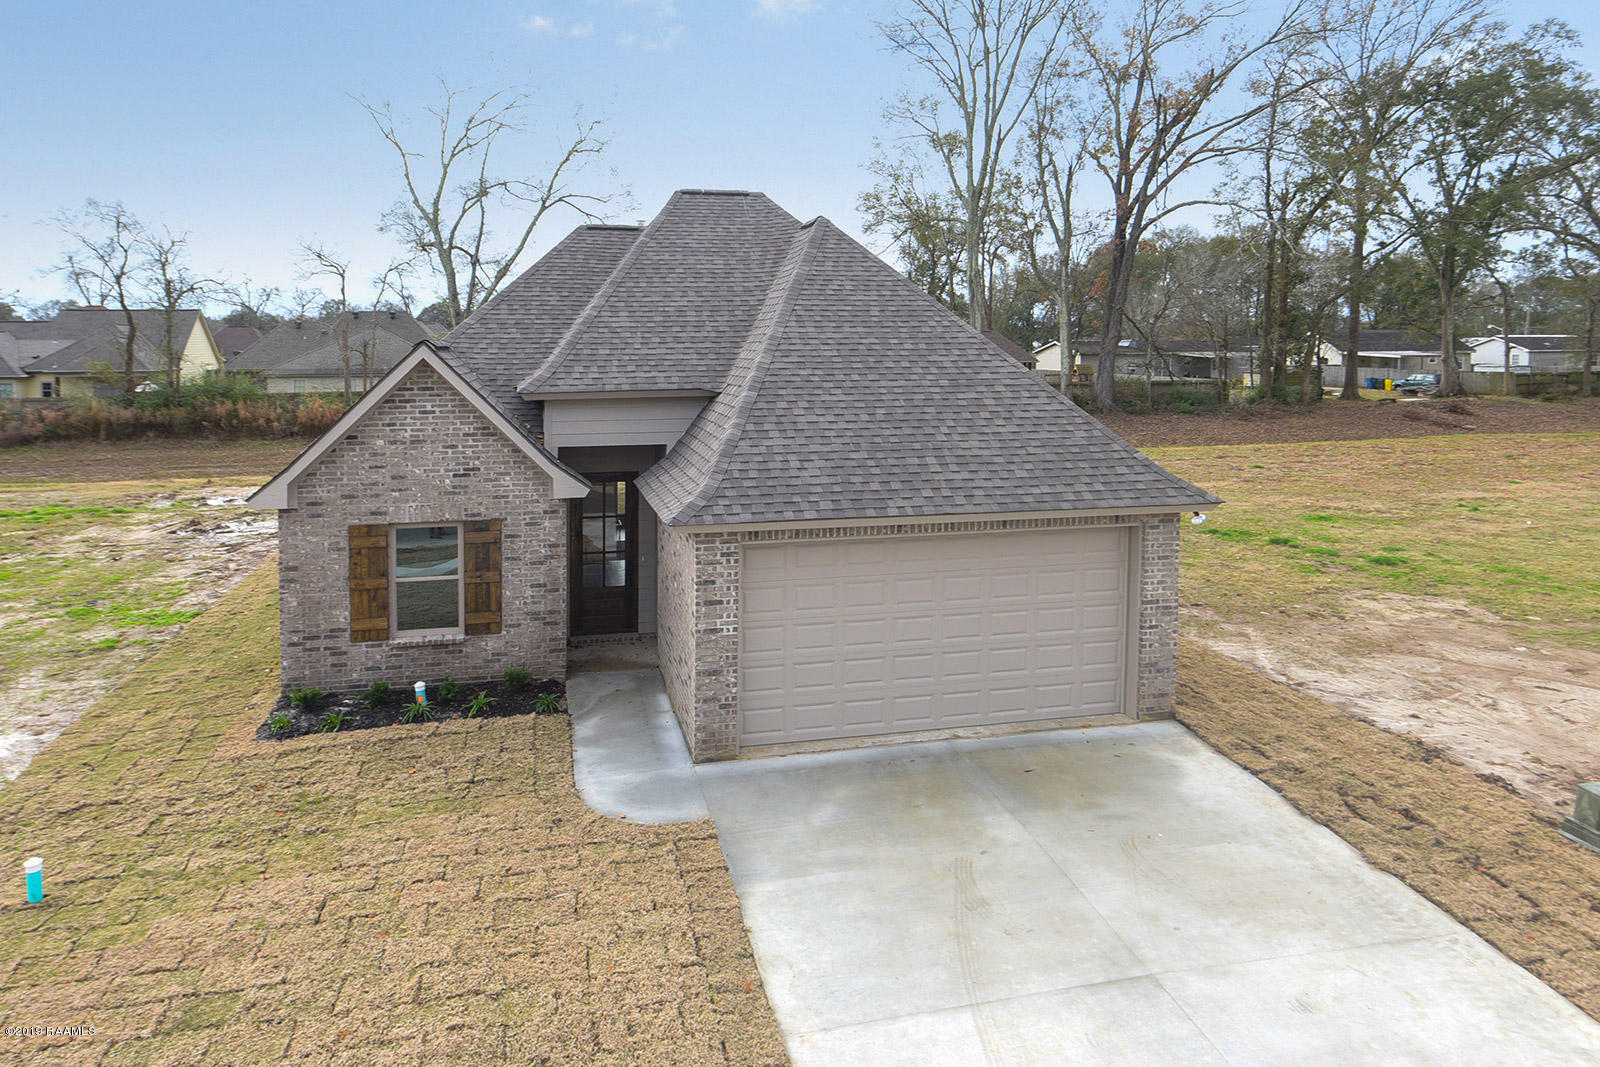 135 Luxford Way, Carencro, LA 70520